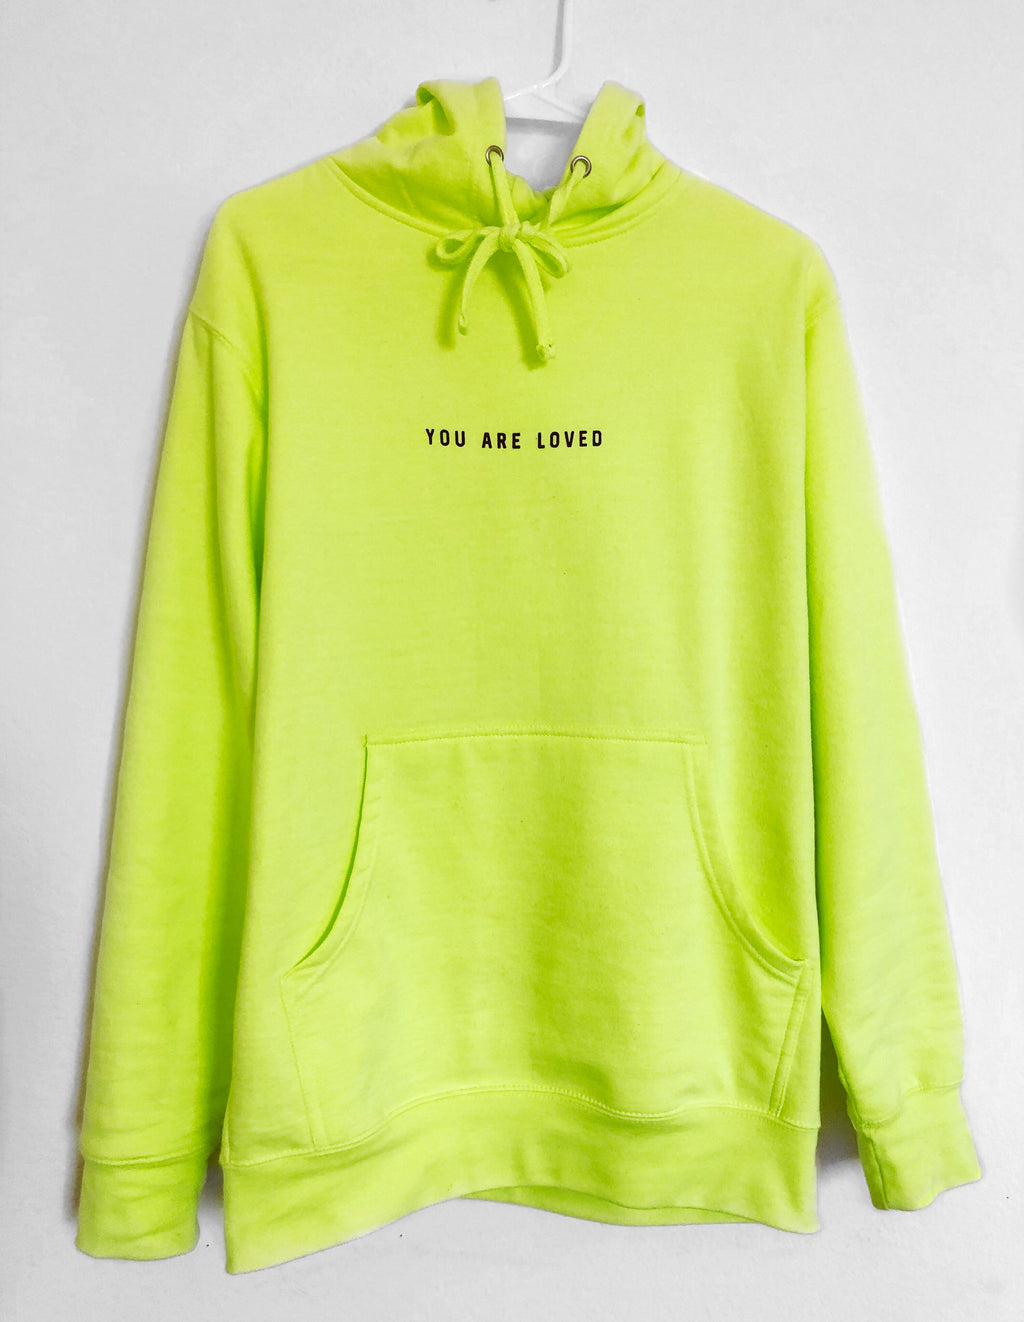 YOU ARE LOVED SAFETY YELLOW HOODIE